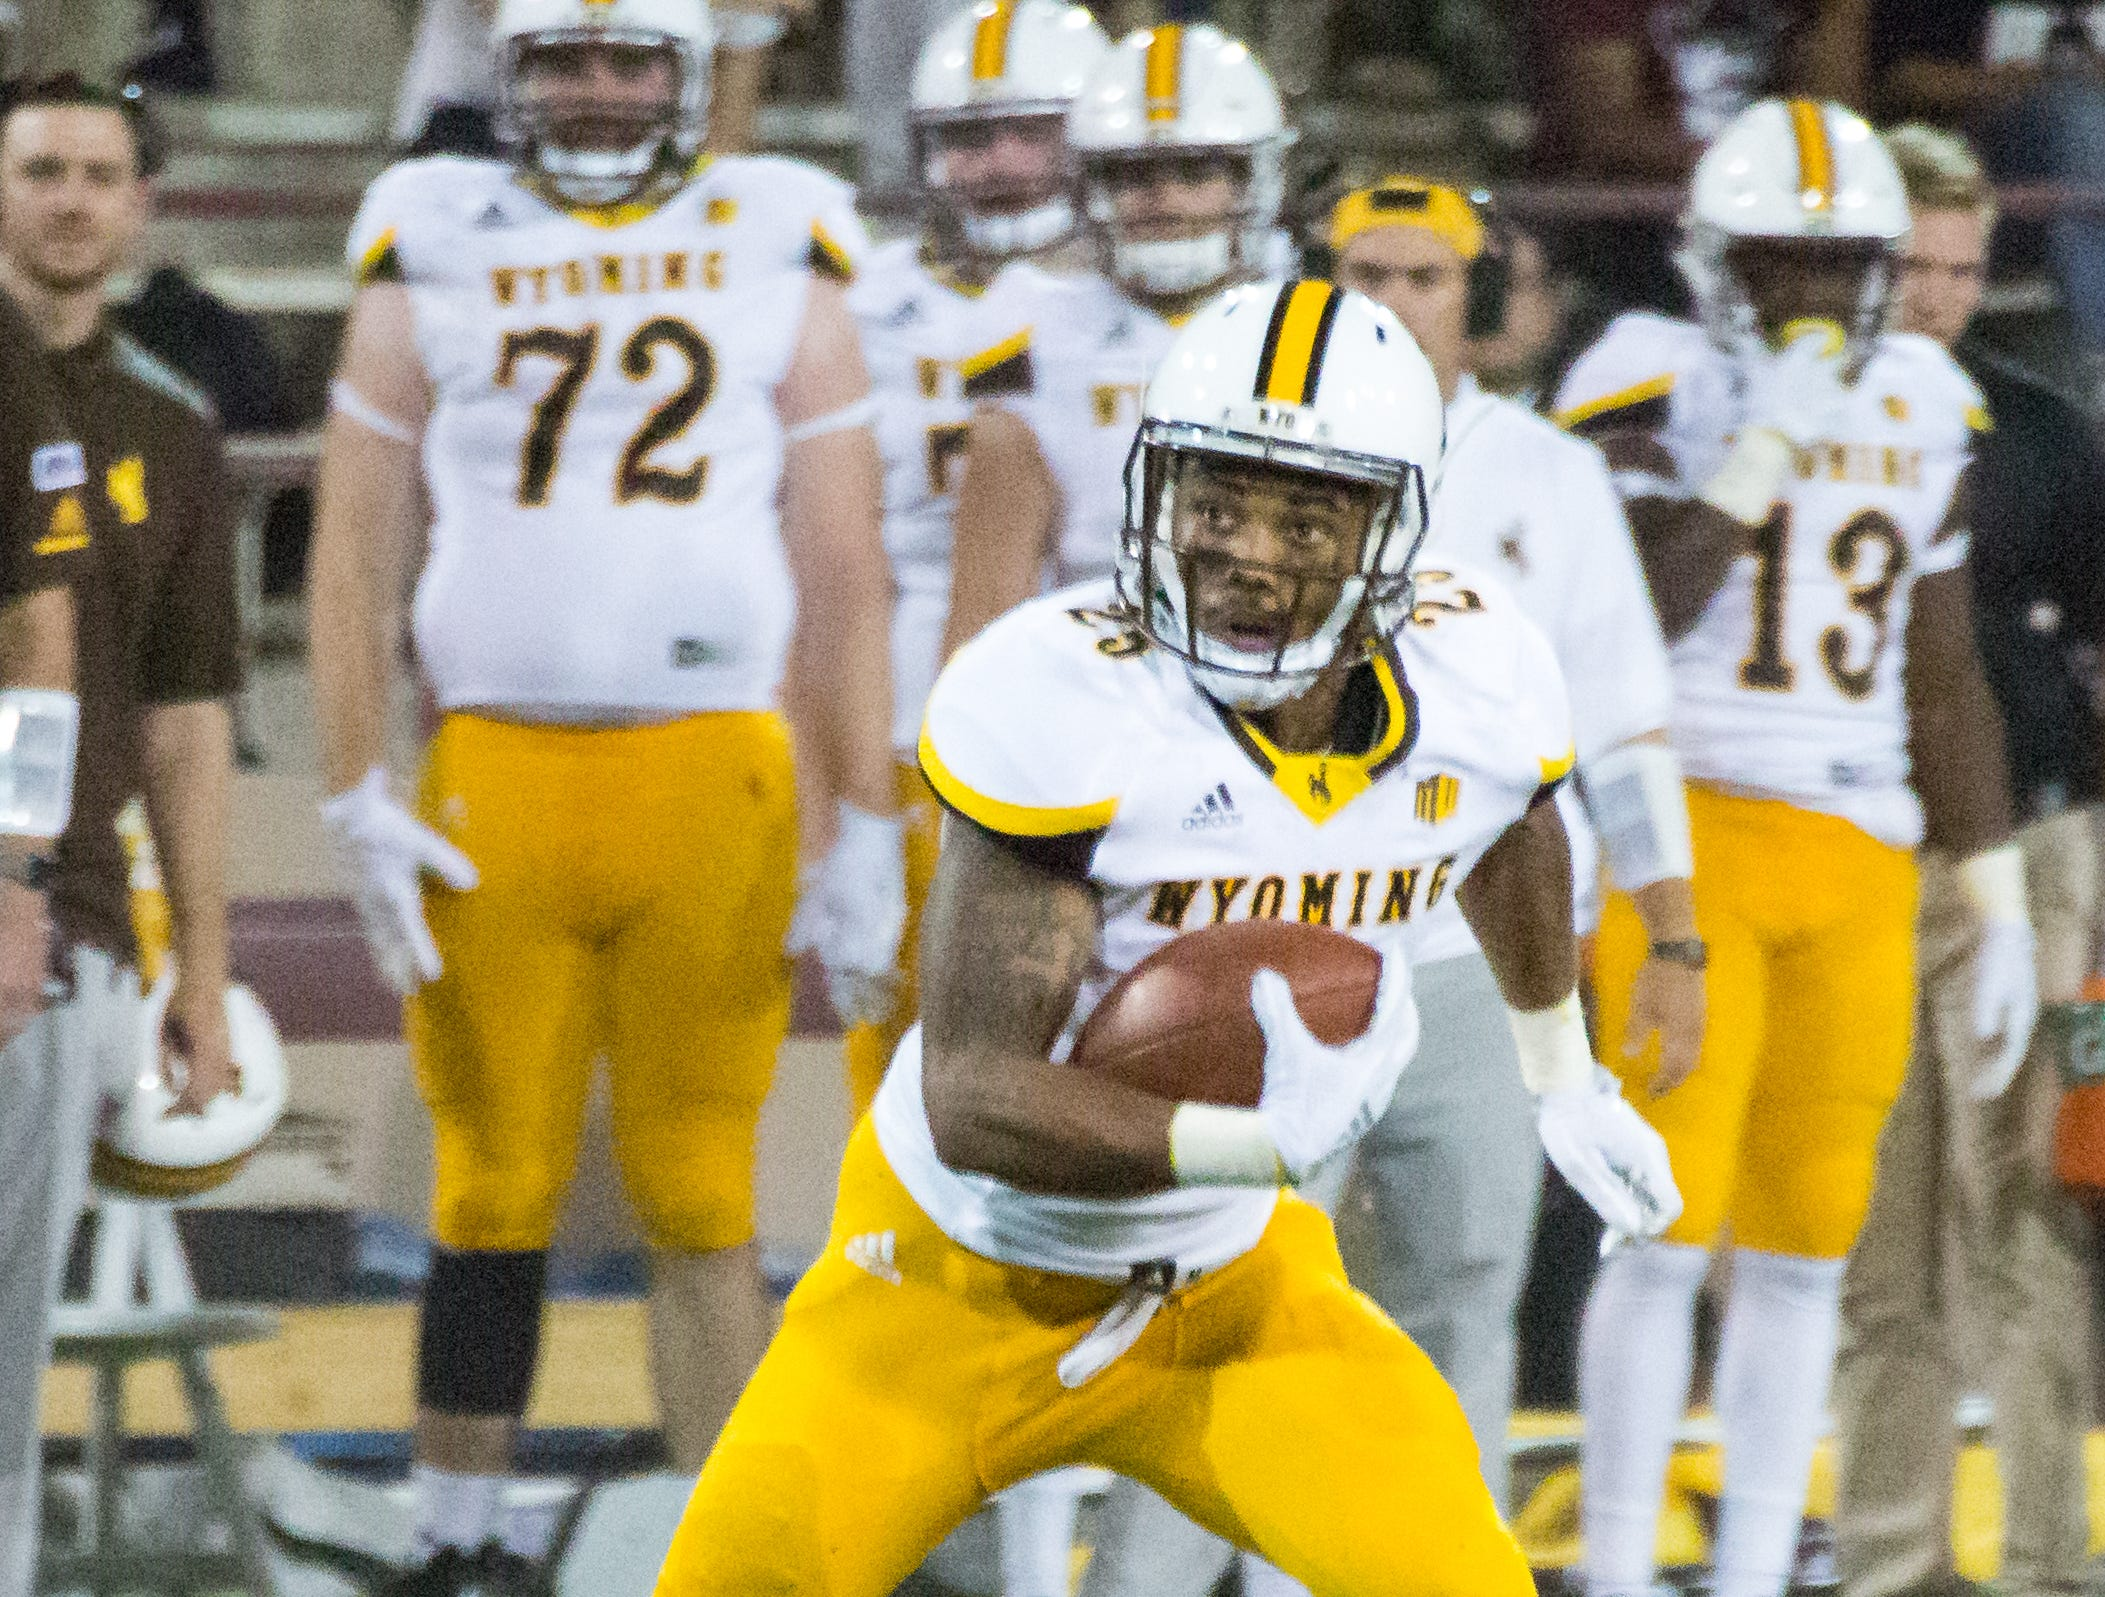 Wyoming's Austin Conway runs with the ball on Saturday, August 25, 2018, during the NMSU/Wyoming game at the Aggie Memorial Stadium.